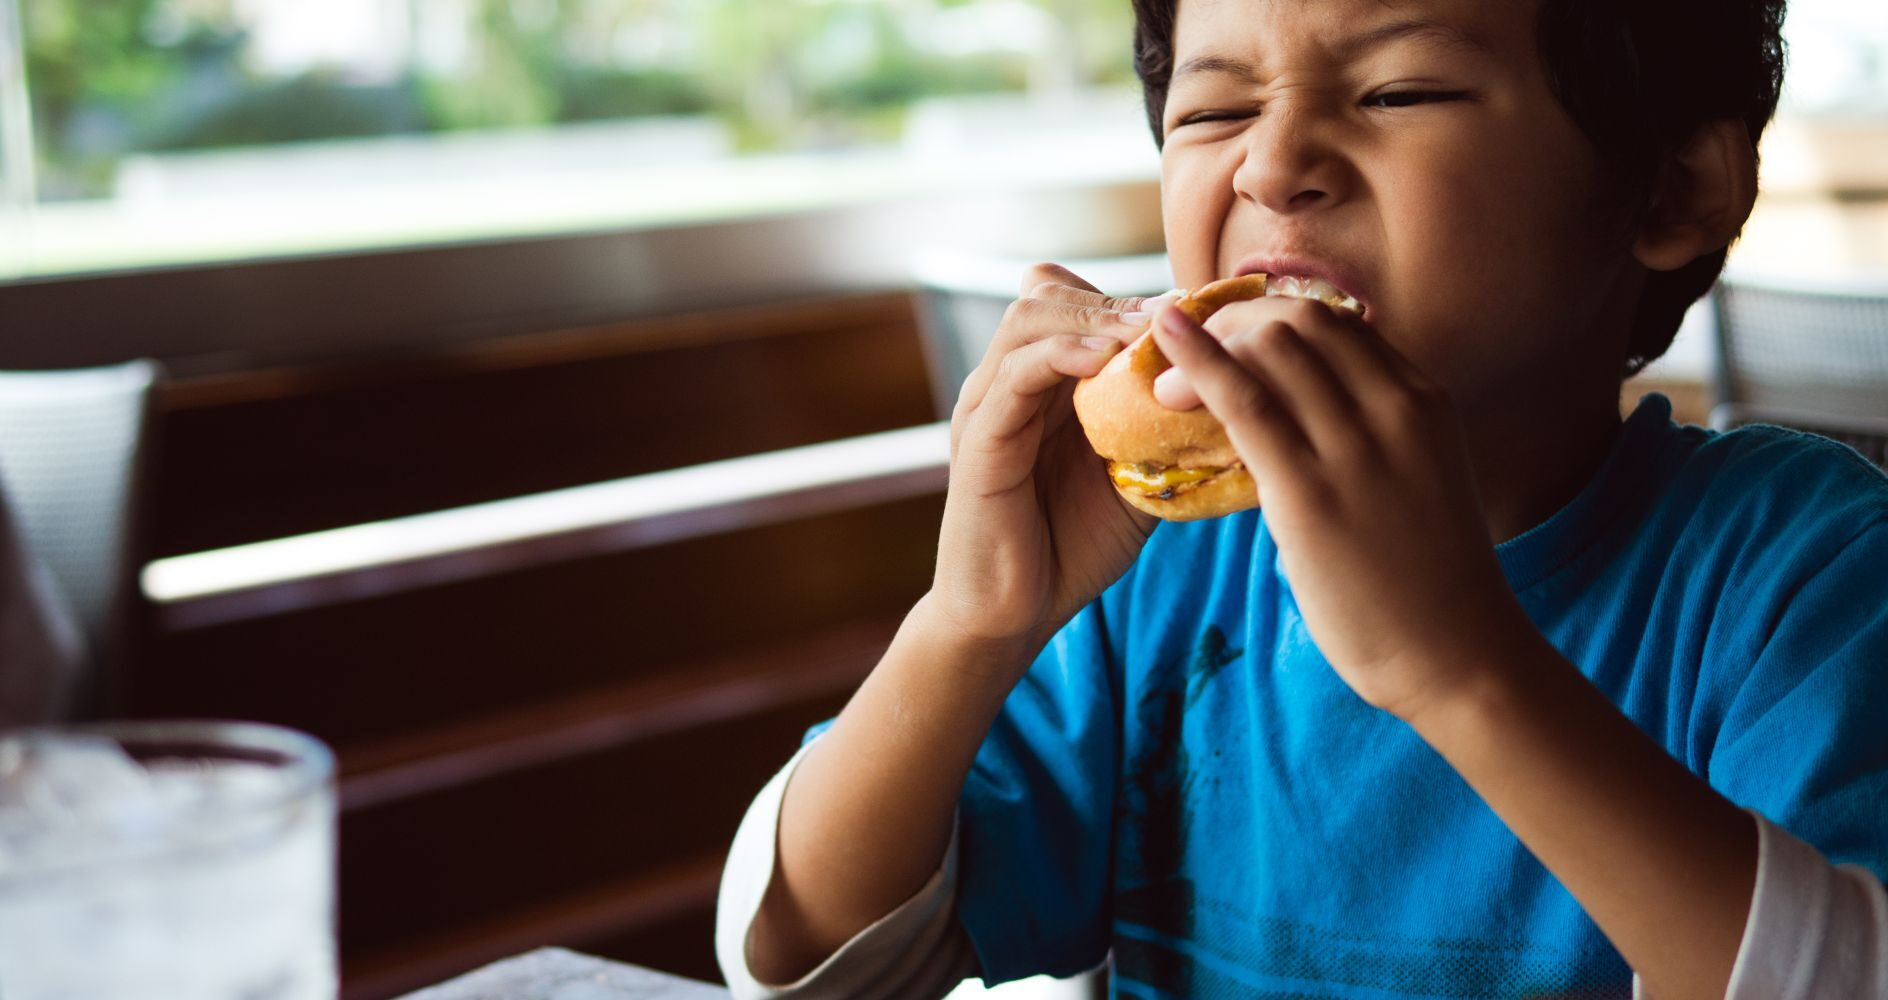 What are the disadvantages of eating fast food?